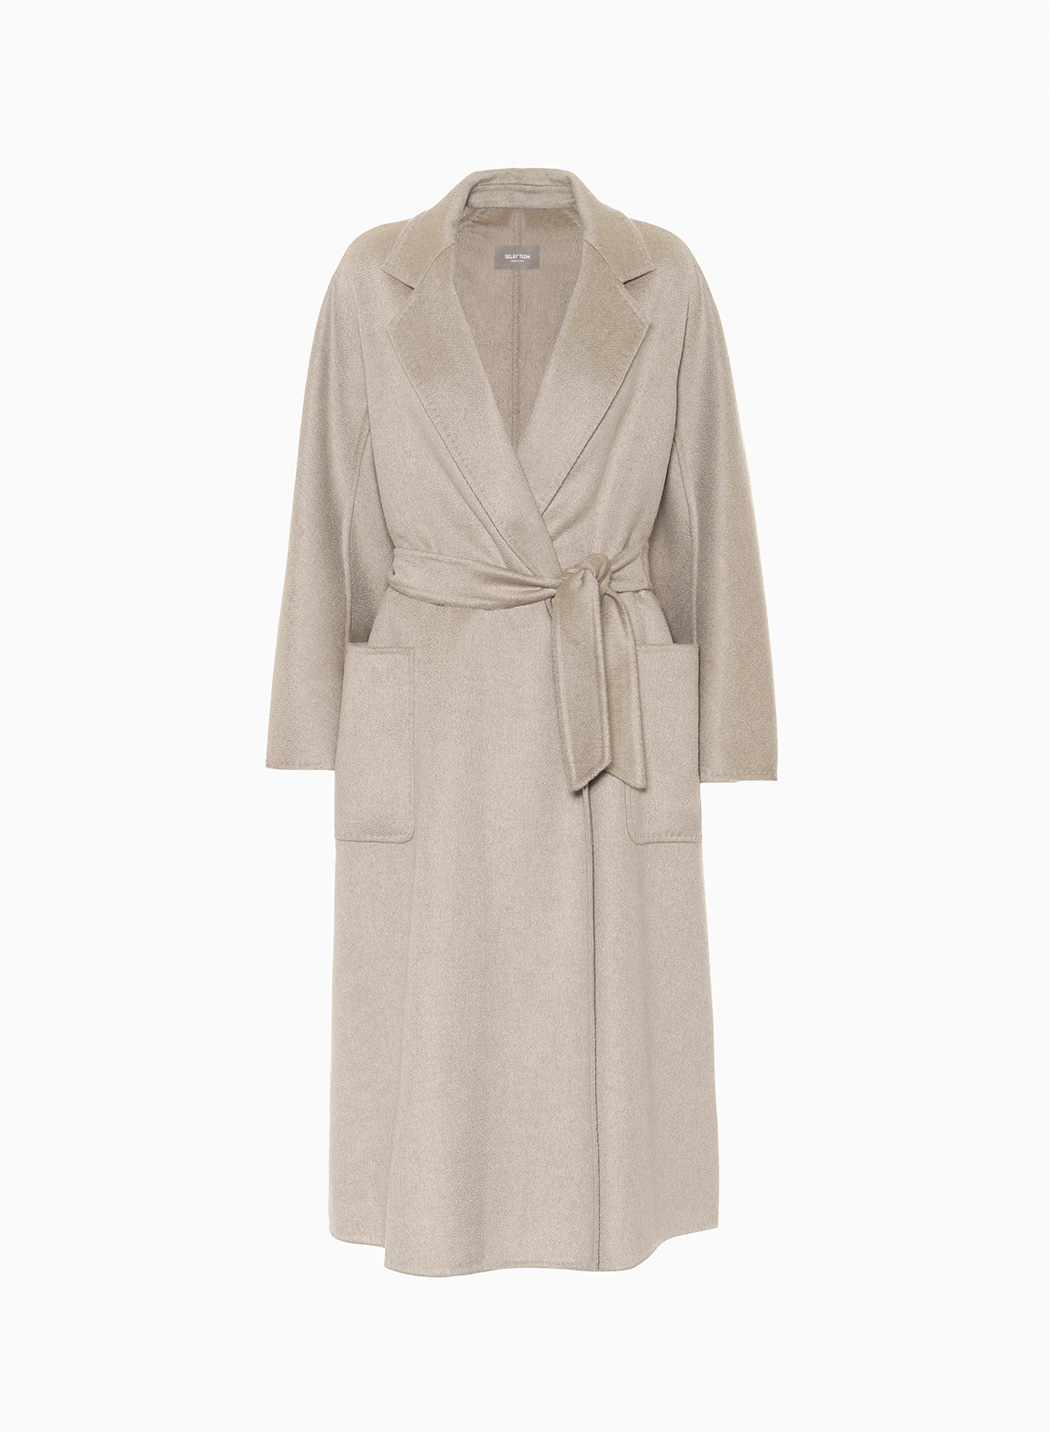 HAND MADE CASHMERE ROBE COAT / SAND BEIGE